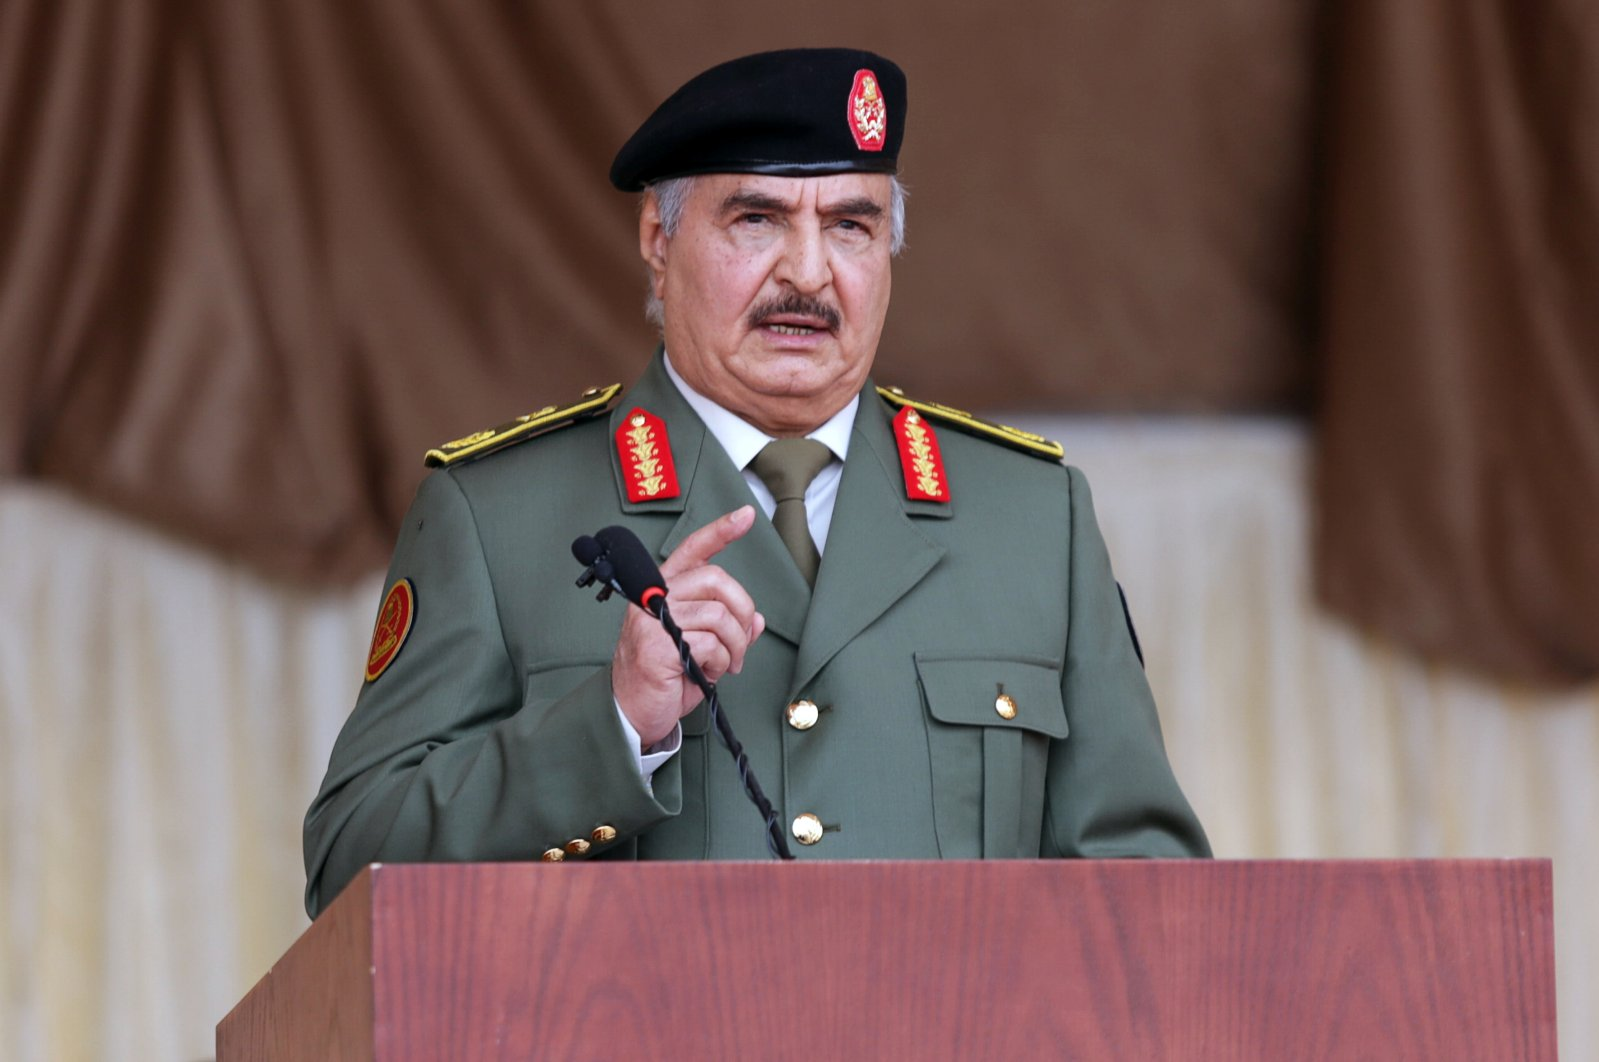 Libyan putschist Gen. Khalifa Haftar gestures as he speaks during Independence Day celebrations in Benghazi, Libya, Dec. 24, 2020. (Reuters Photo)